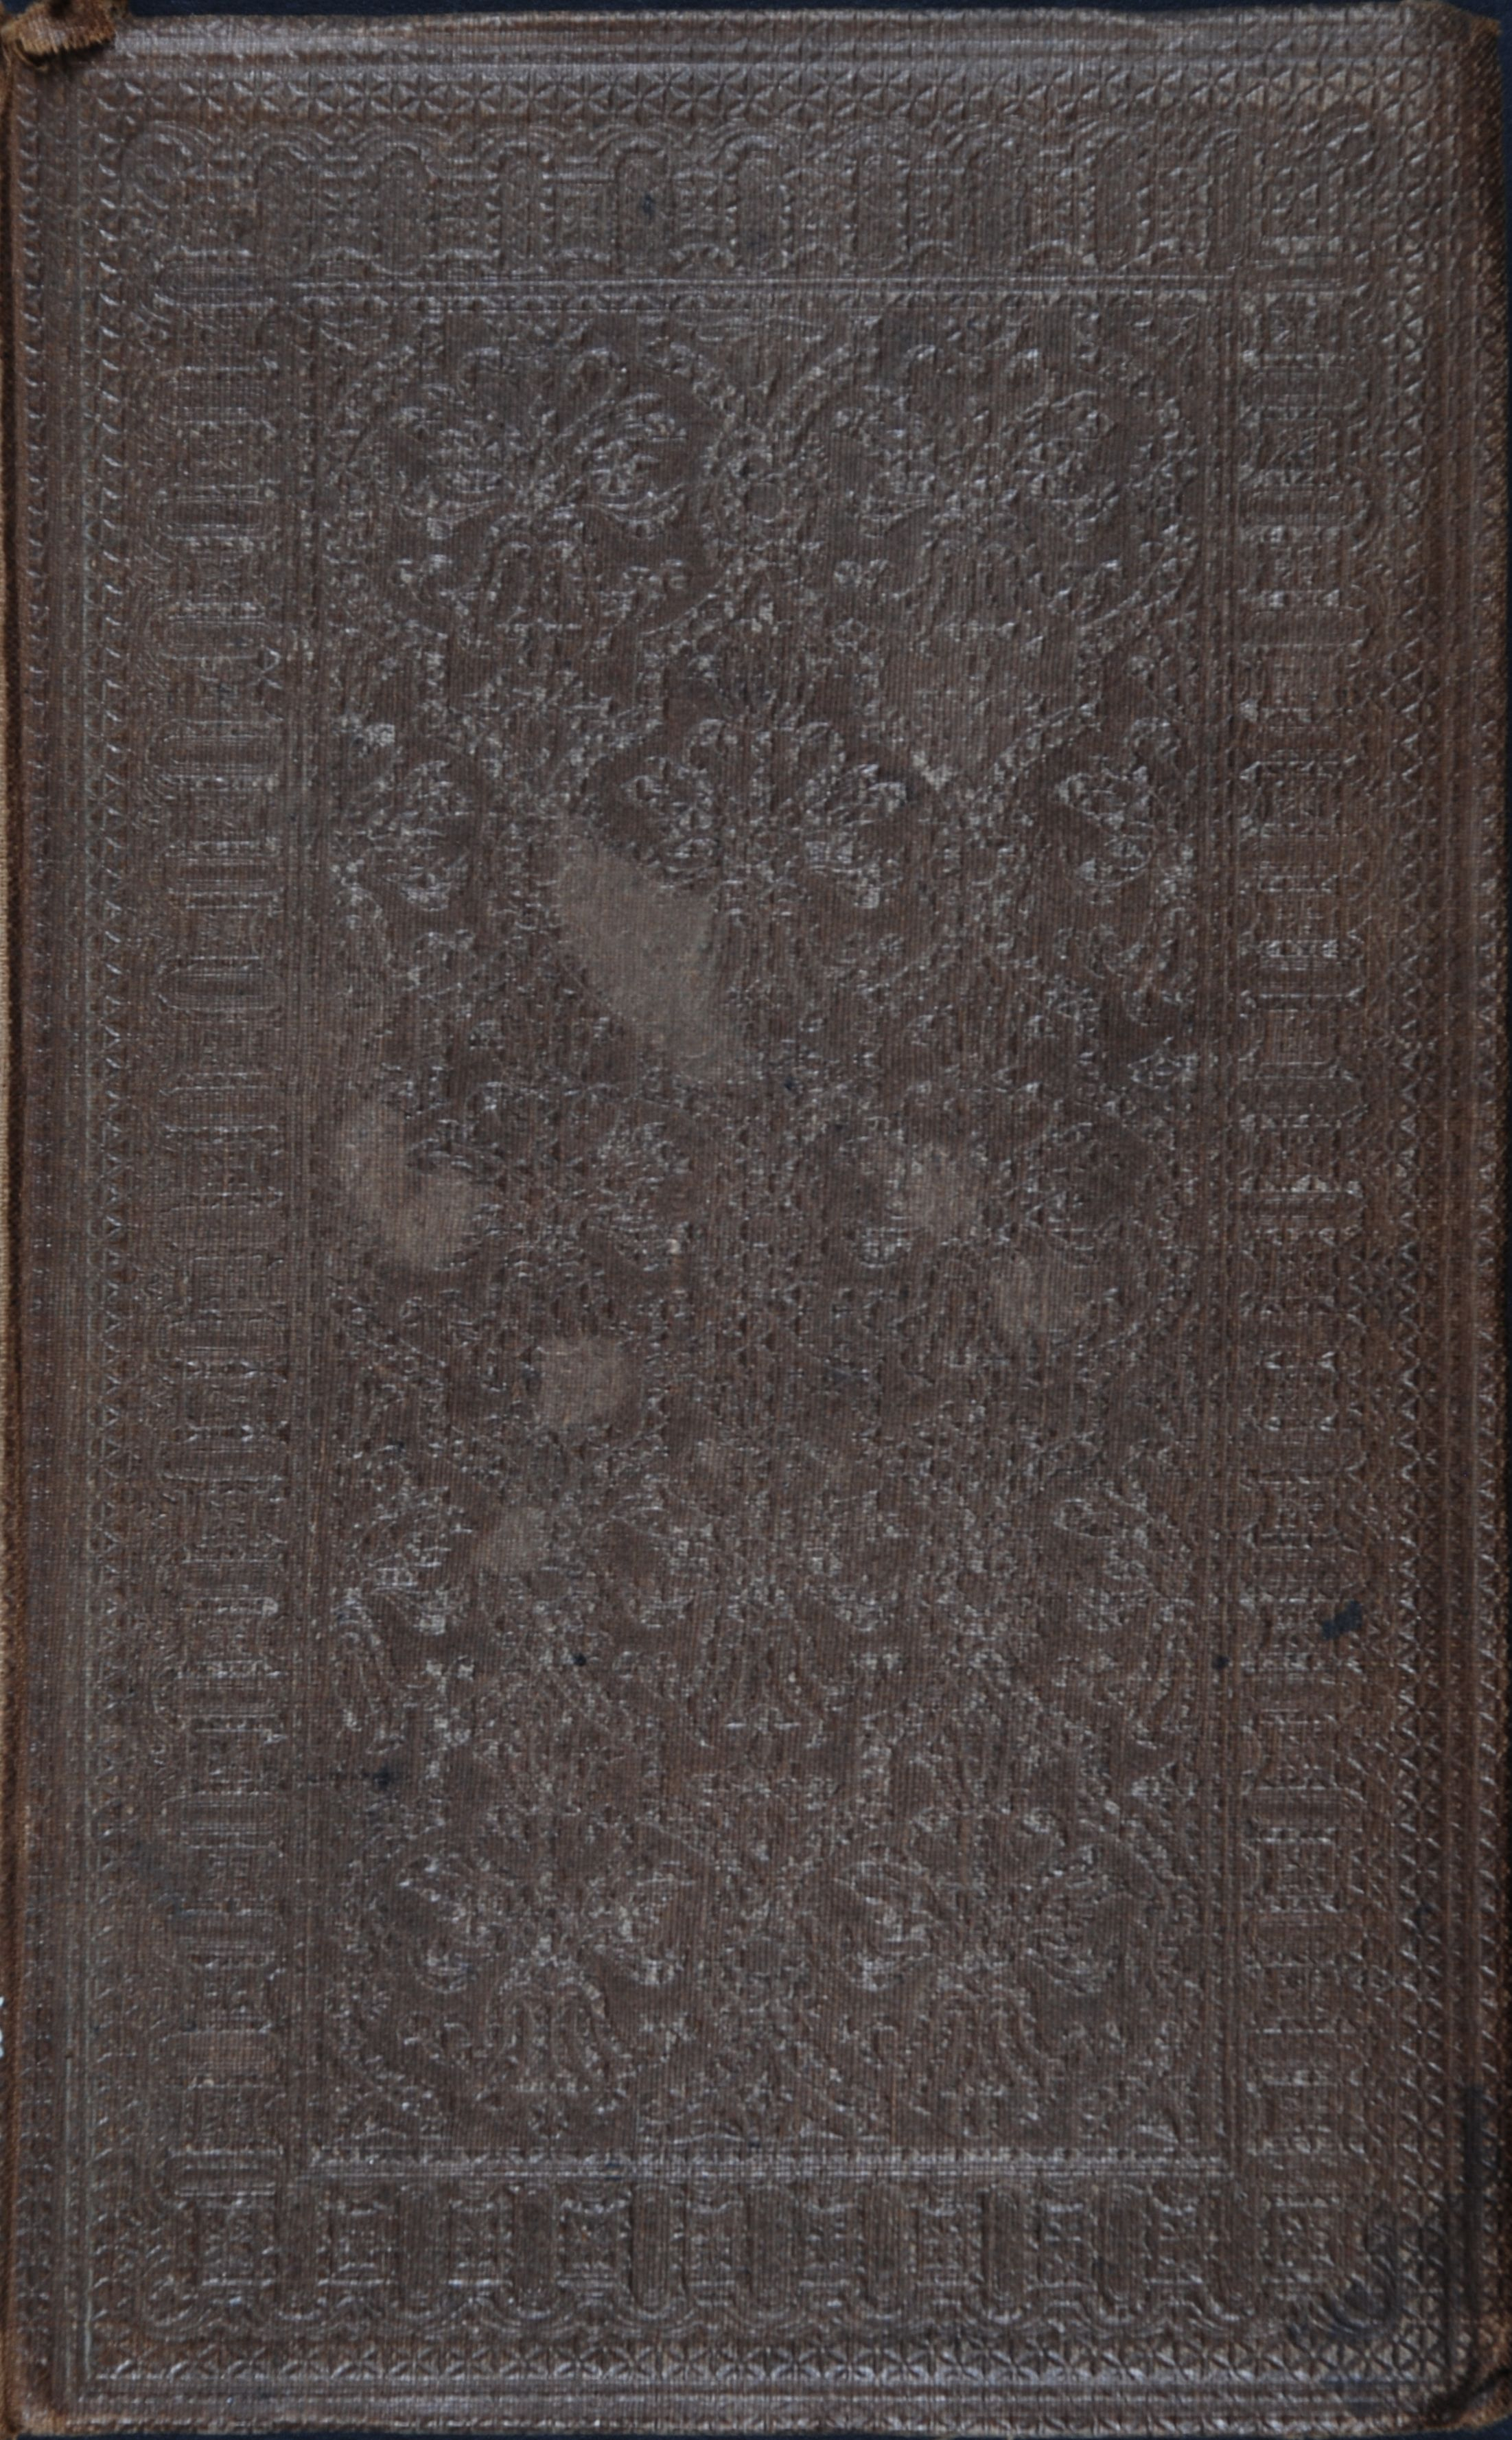 F. E. Maning. Old New Zealand: Being incidents of native customs and character in the old times. London: Smith, Elder and Co., 1863.